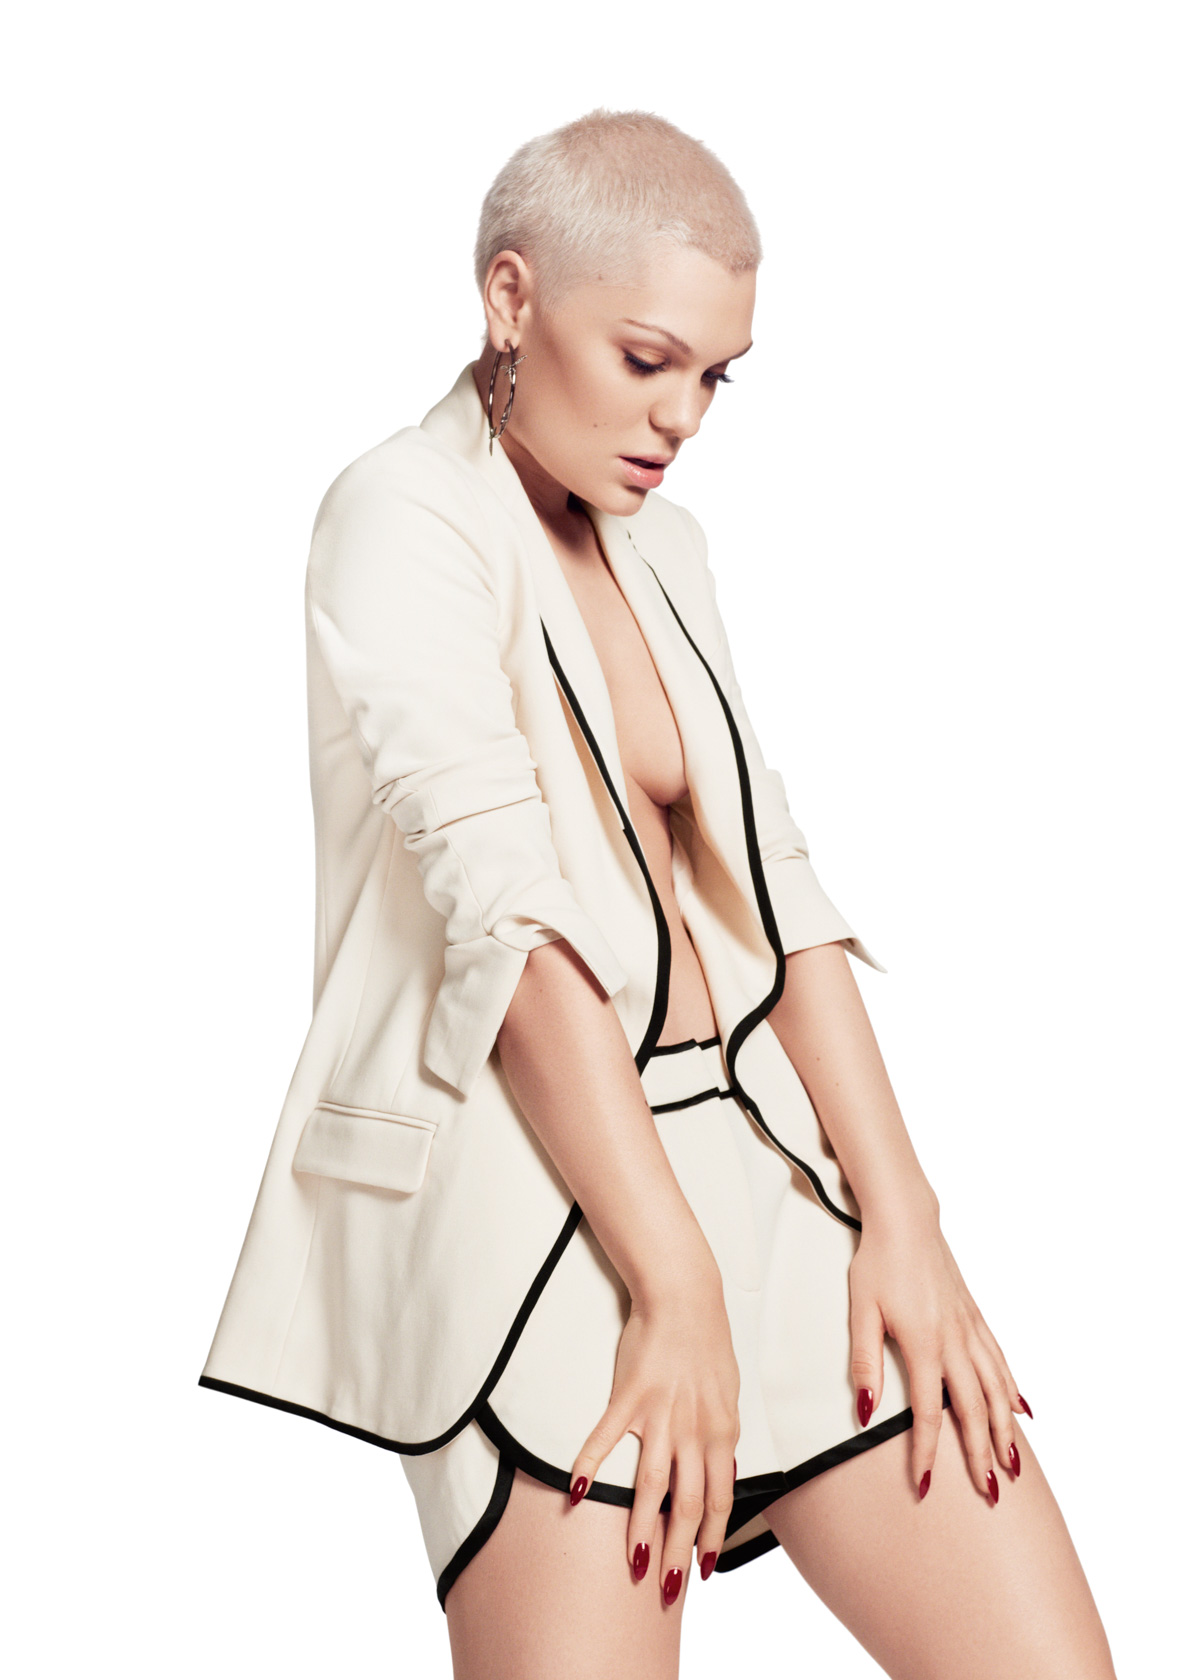 House Of Usher Jessie J by David Roemer 04